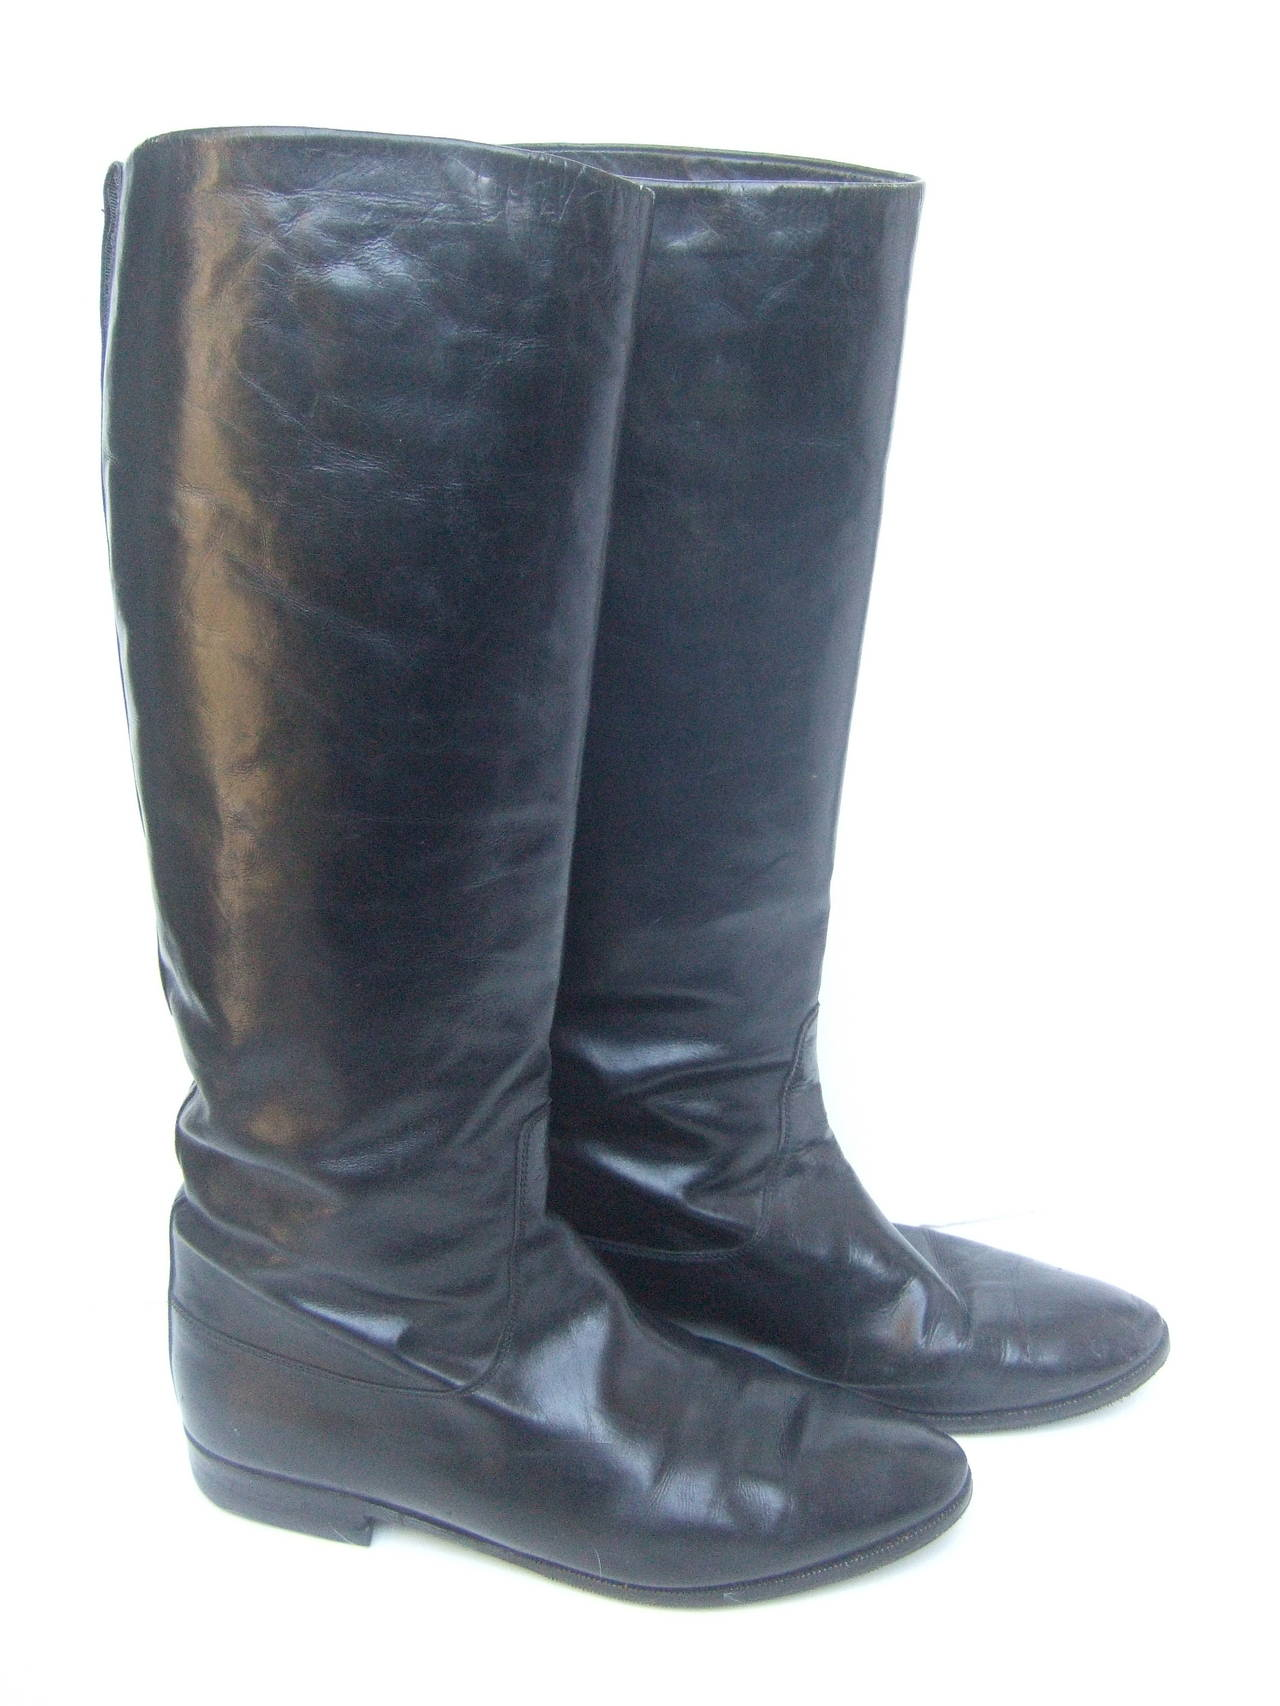 Gucci Black Leather Vintage Riding Boots c 1980s Size 38.5 3